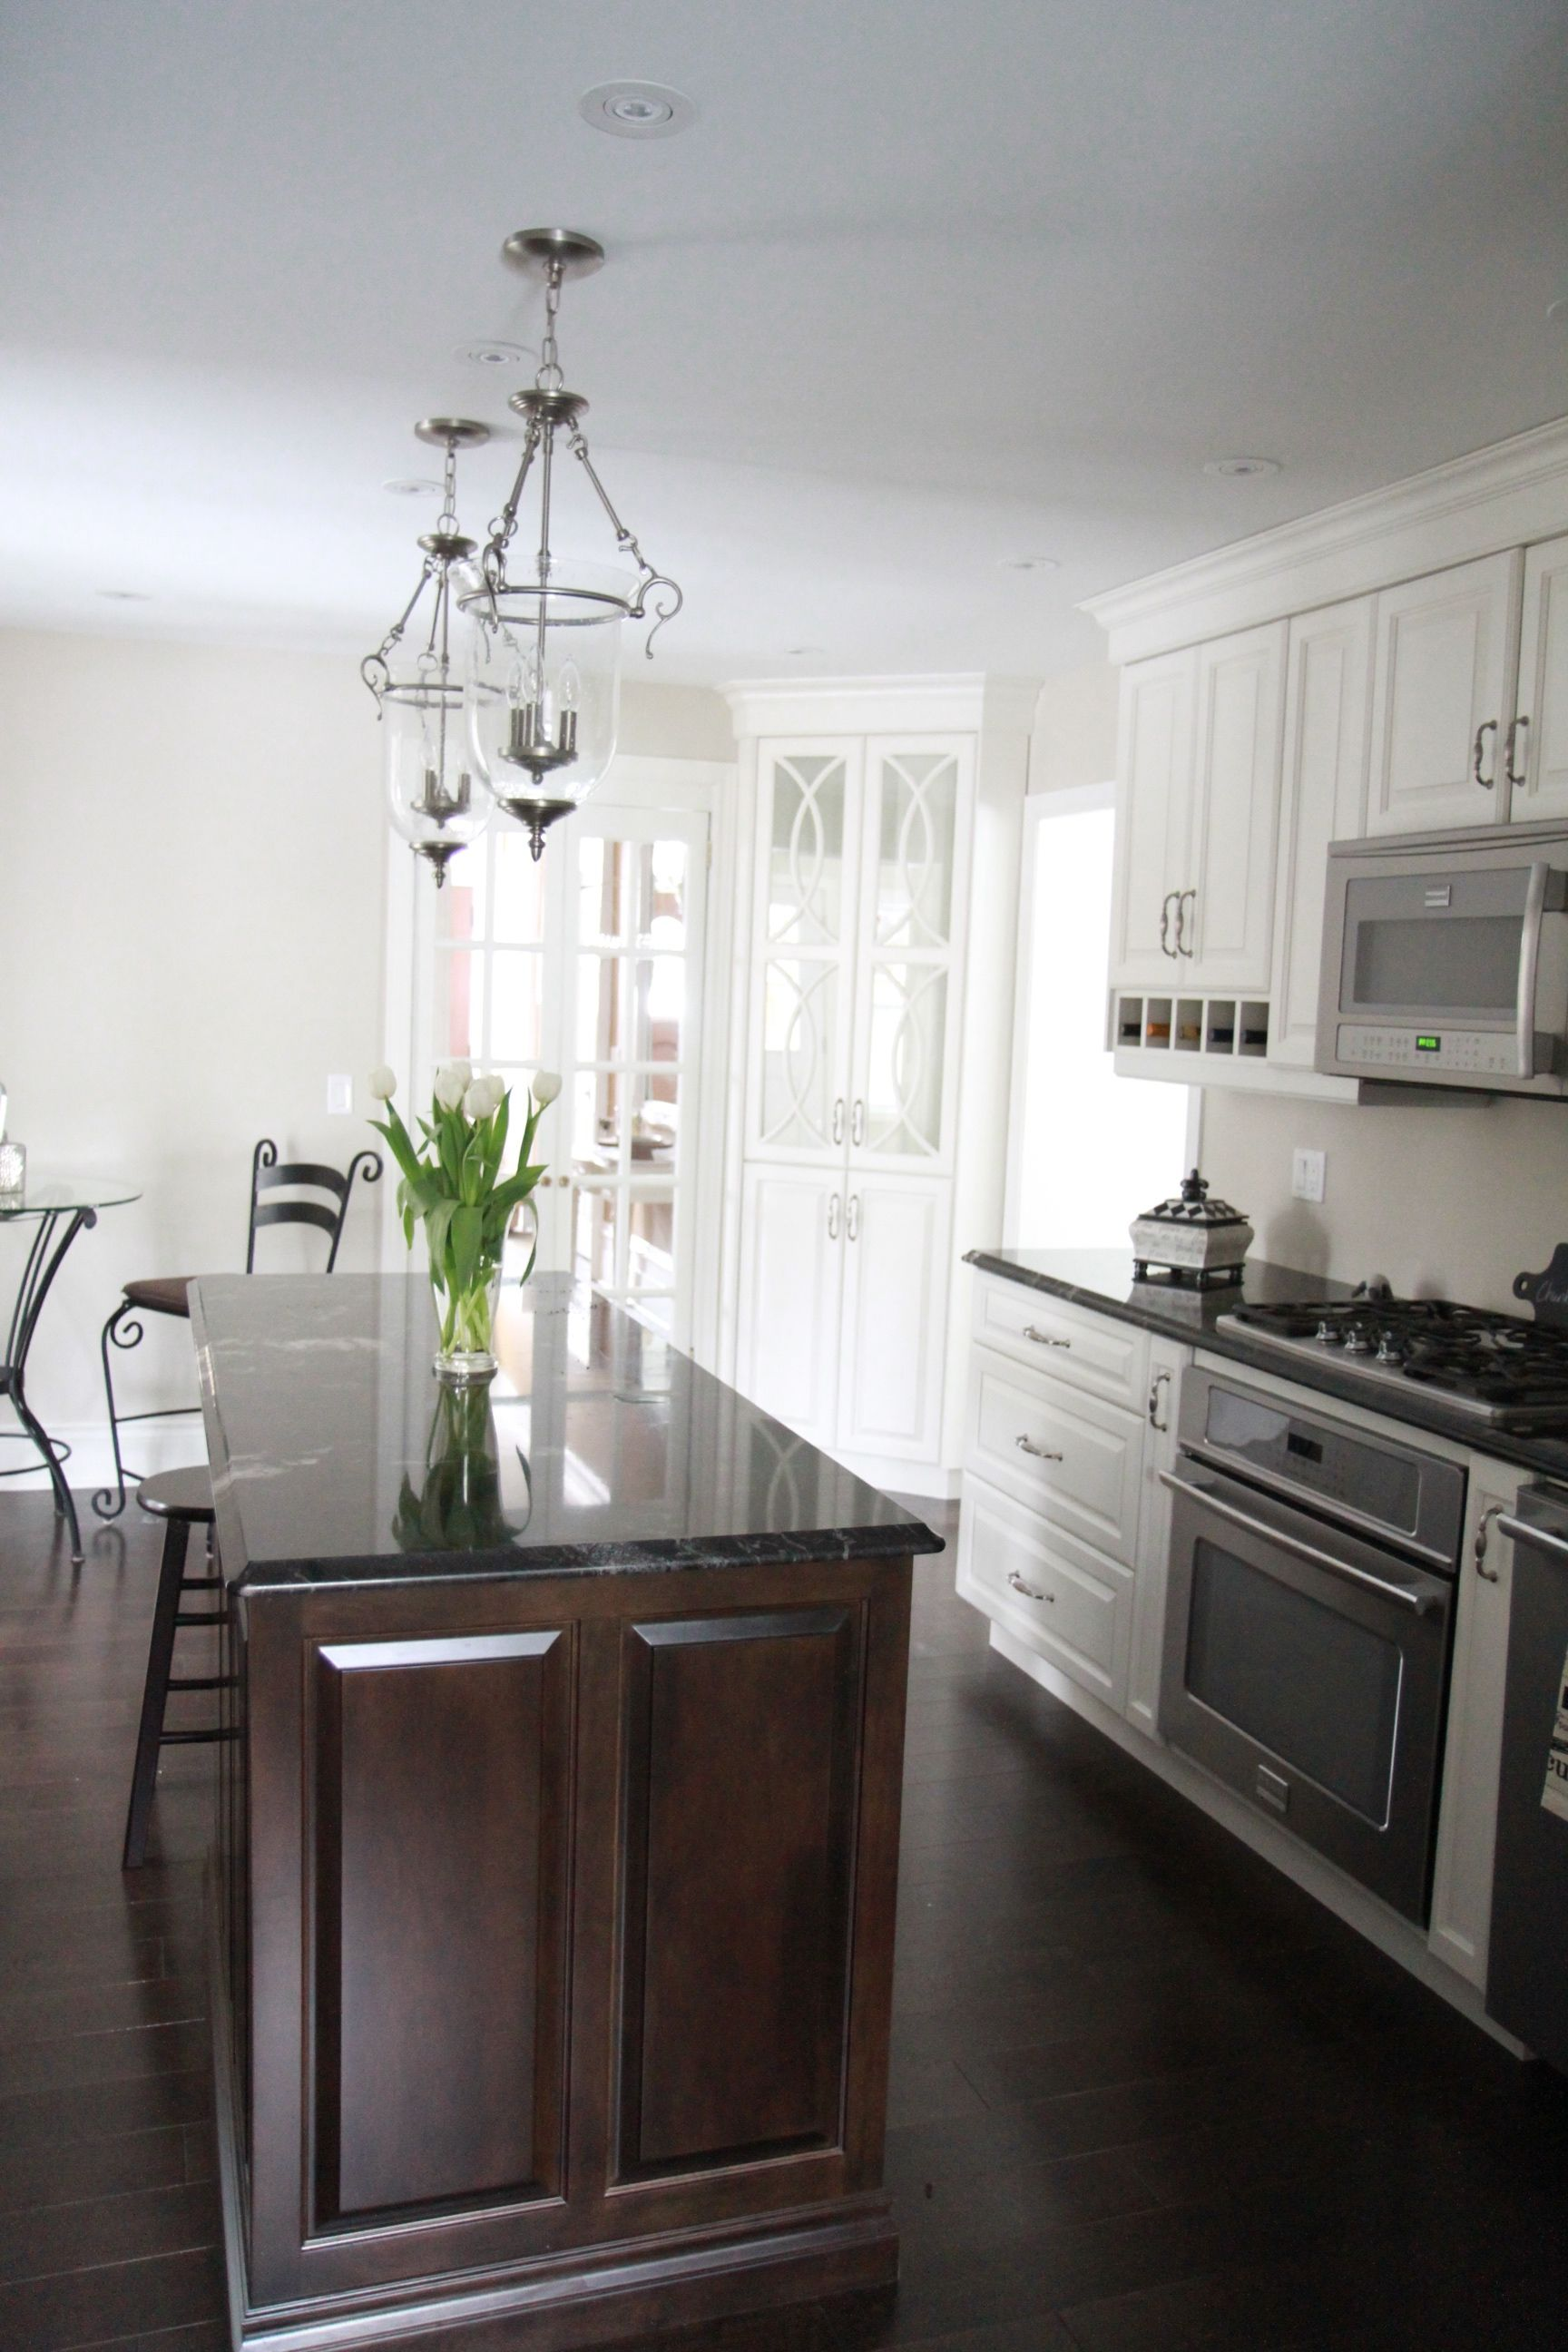 white custom kitchen and tear drop lights | Our house | Pinterest ...